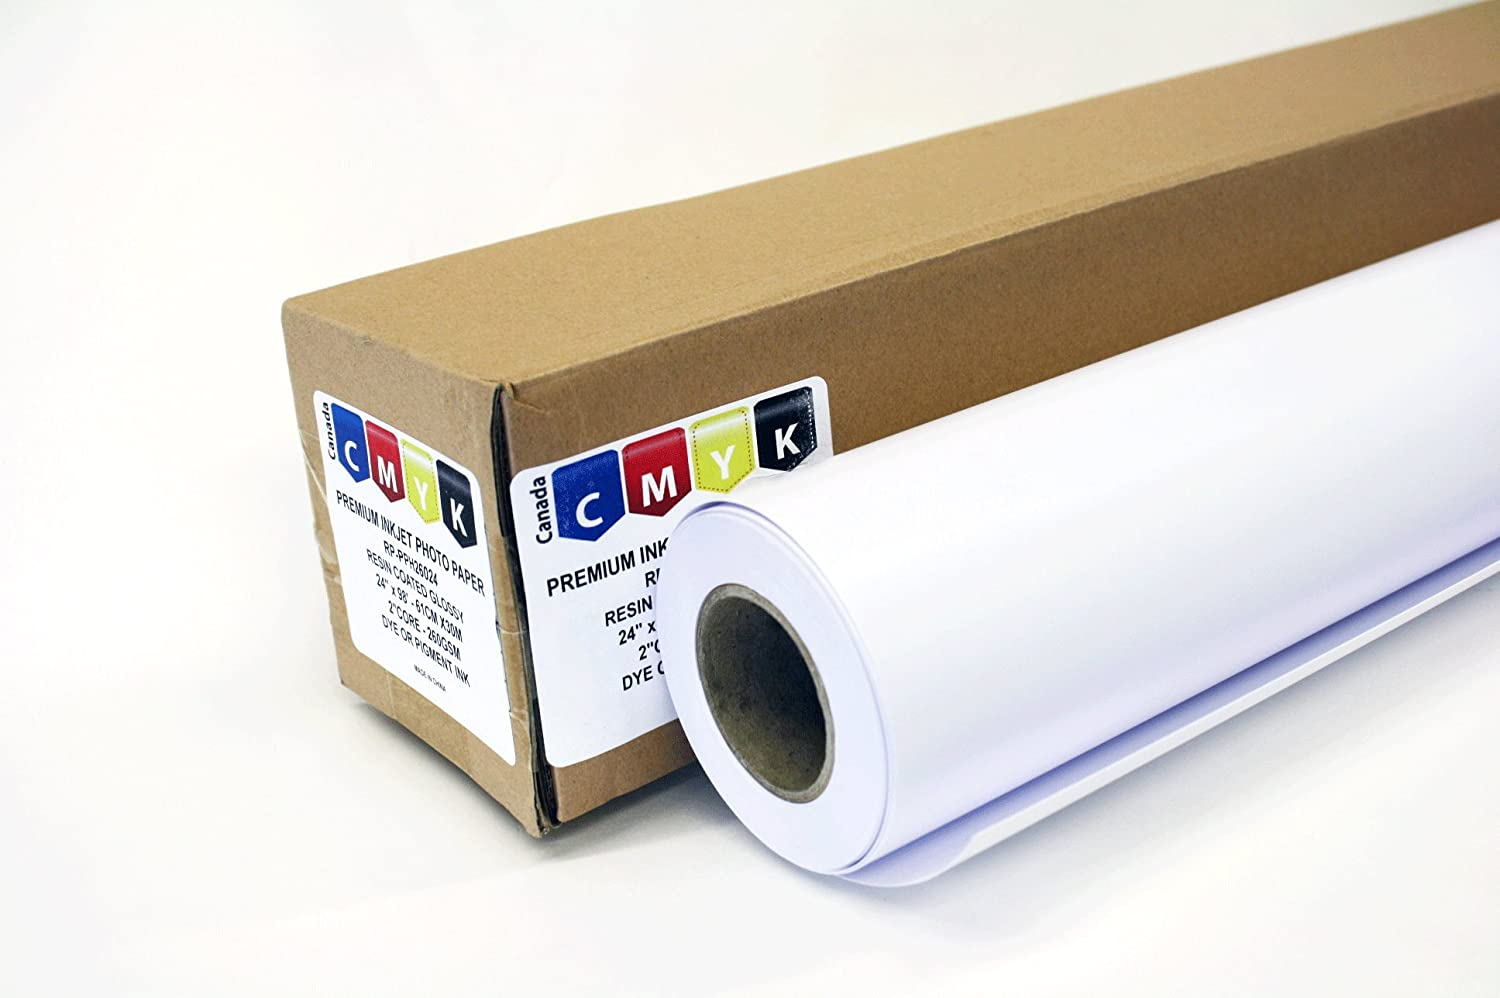 Wide Format Super White Cast Coated Glossy Inkjet Paper 24 inch x 98 ft. Roll 2 Core 260 GSM, Tax included CMYK(Canada)